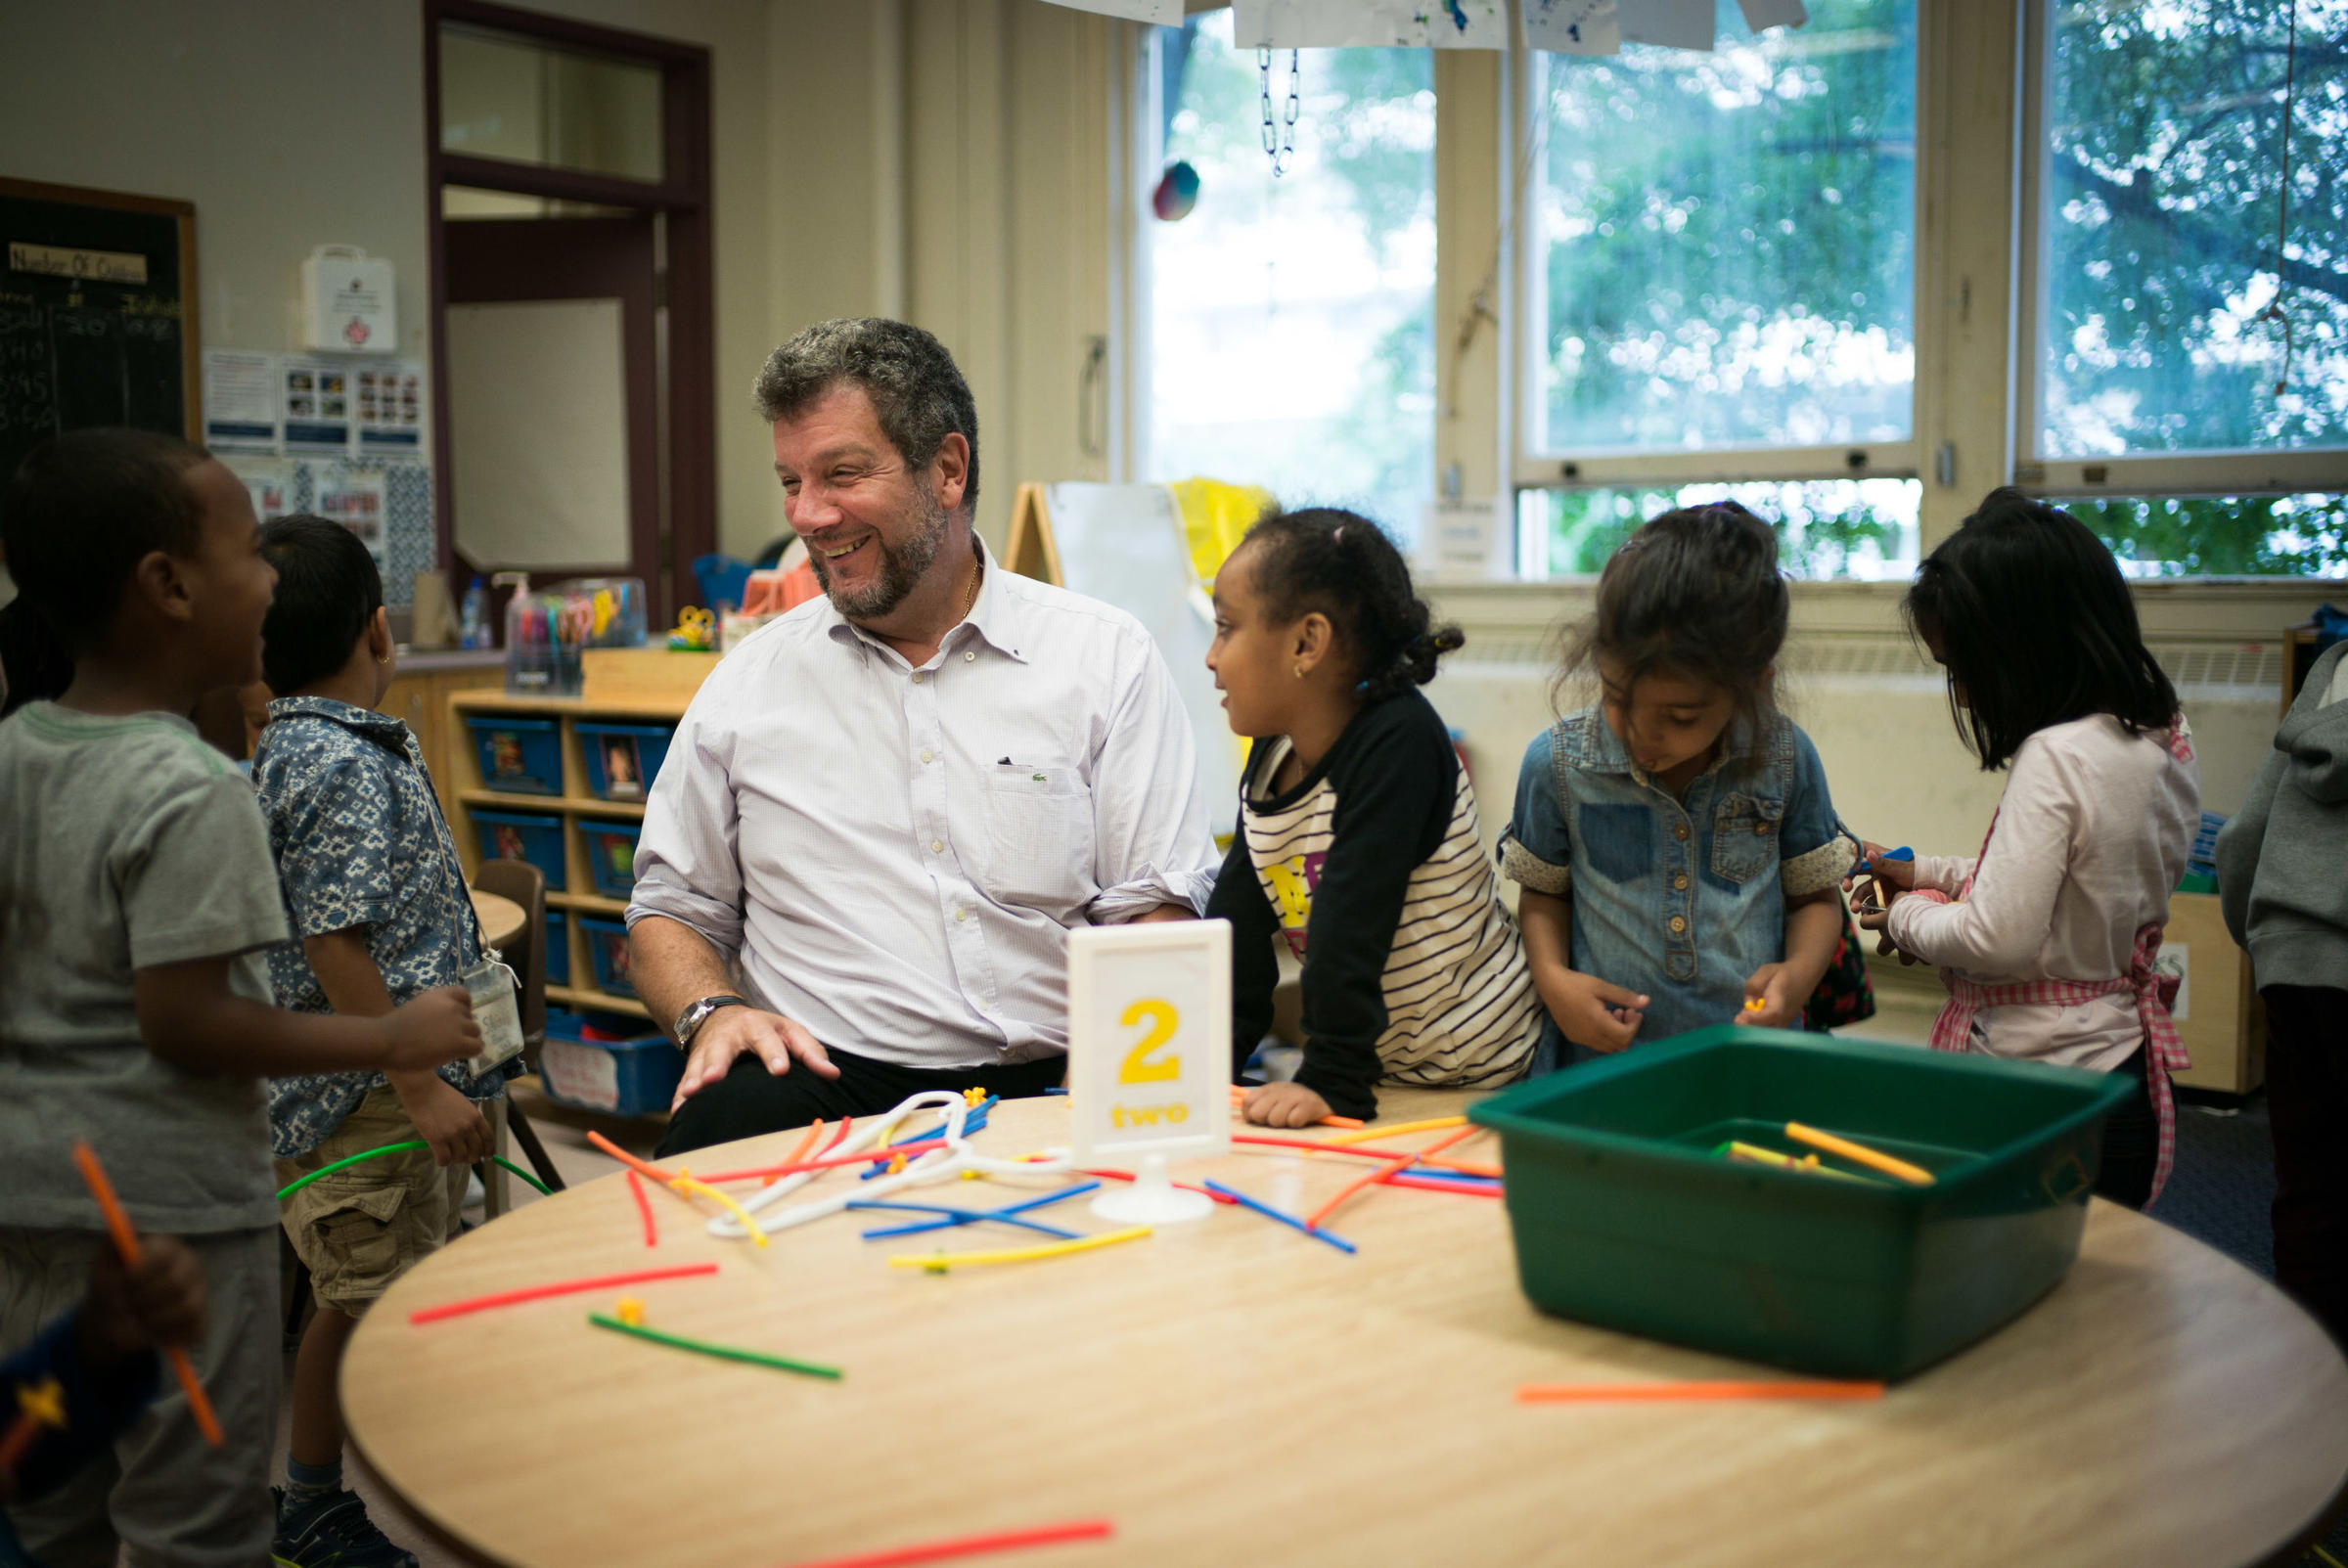 Principal David Crichton, with students at Rose Avenue Public School in Toronto, Ontario, Canada.